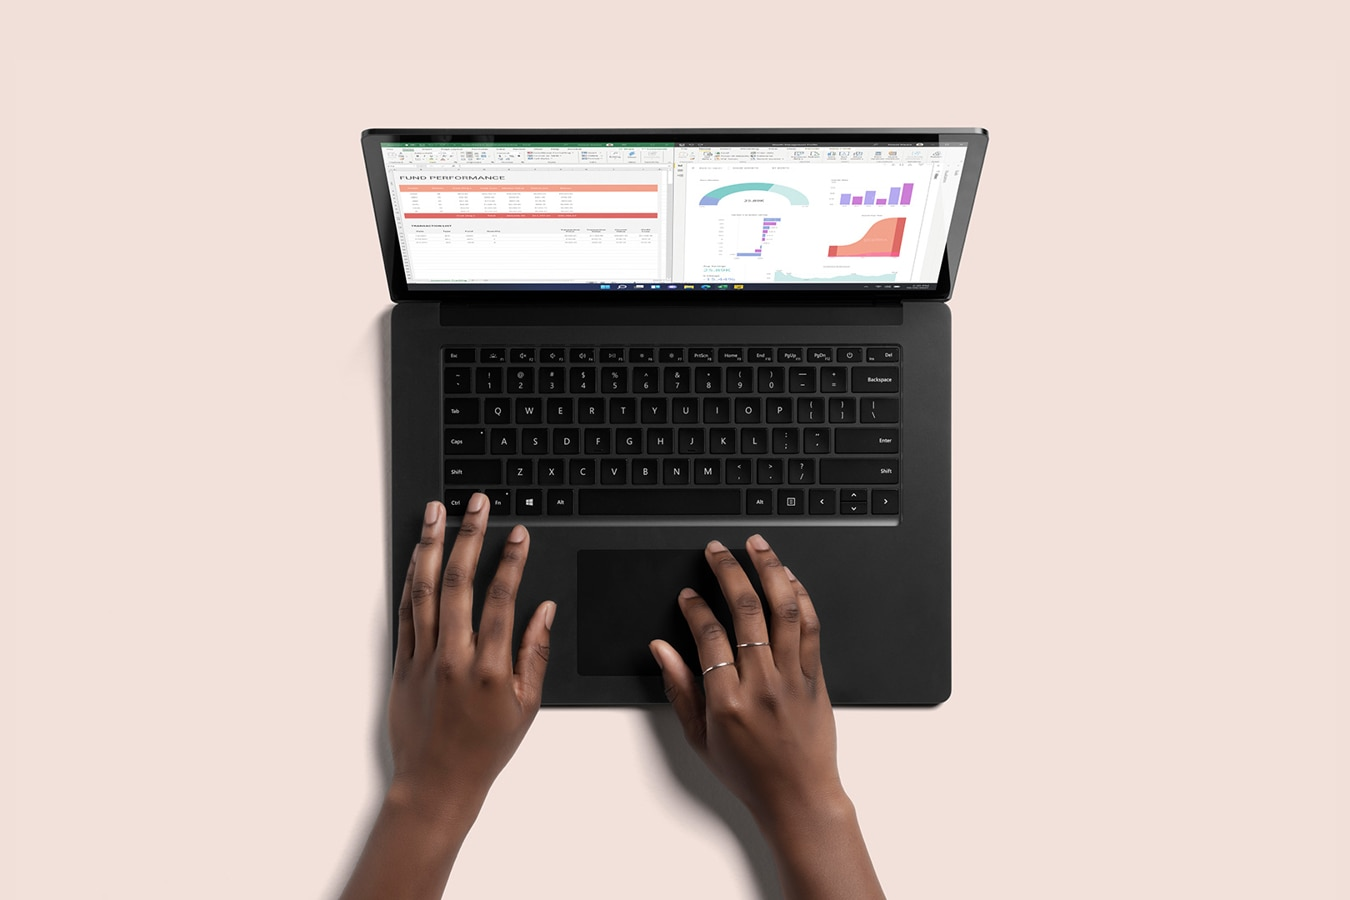 Top down view of Surface Laptop 4 in Black, with two hands typing on the keyboard